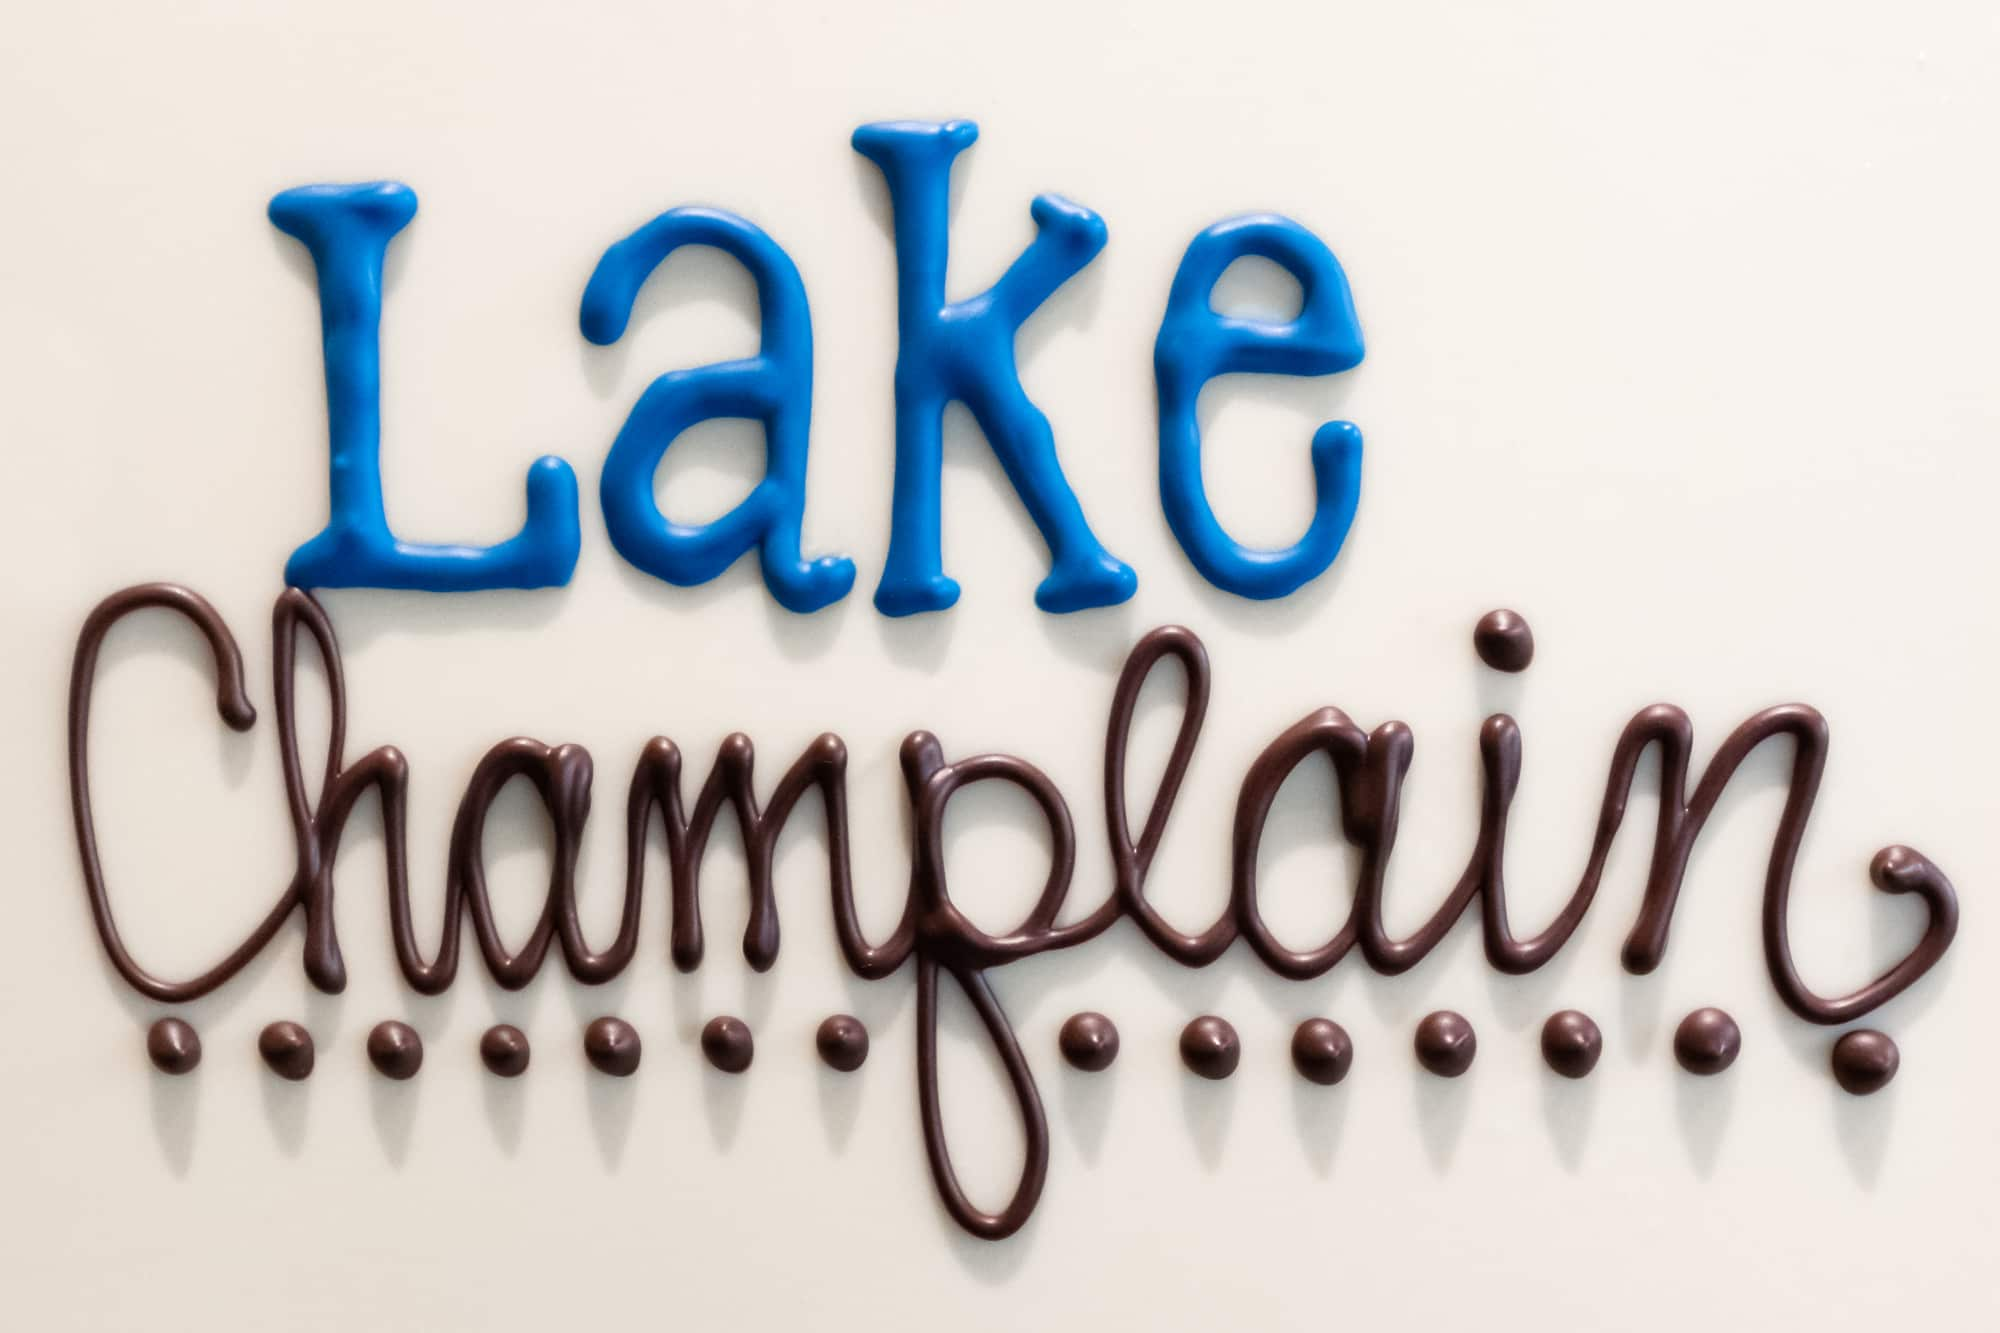 Lake Champlain graphics